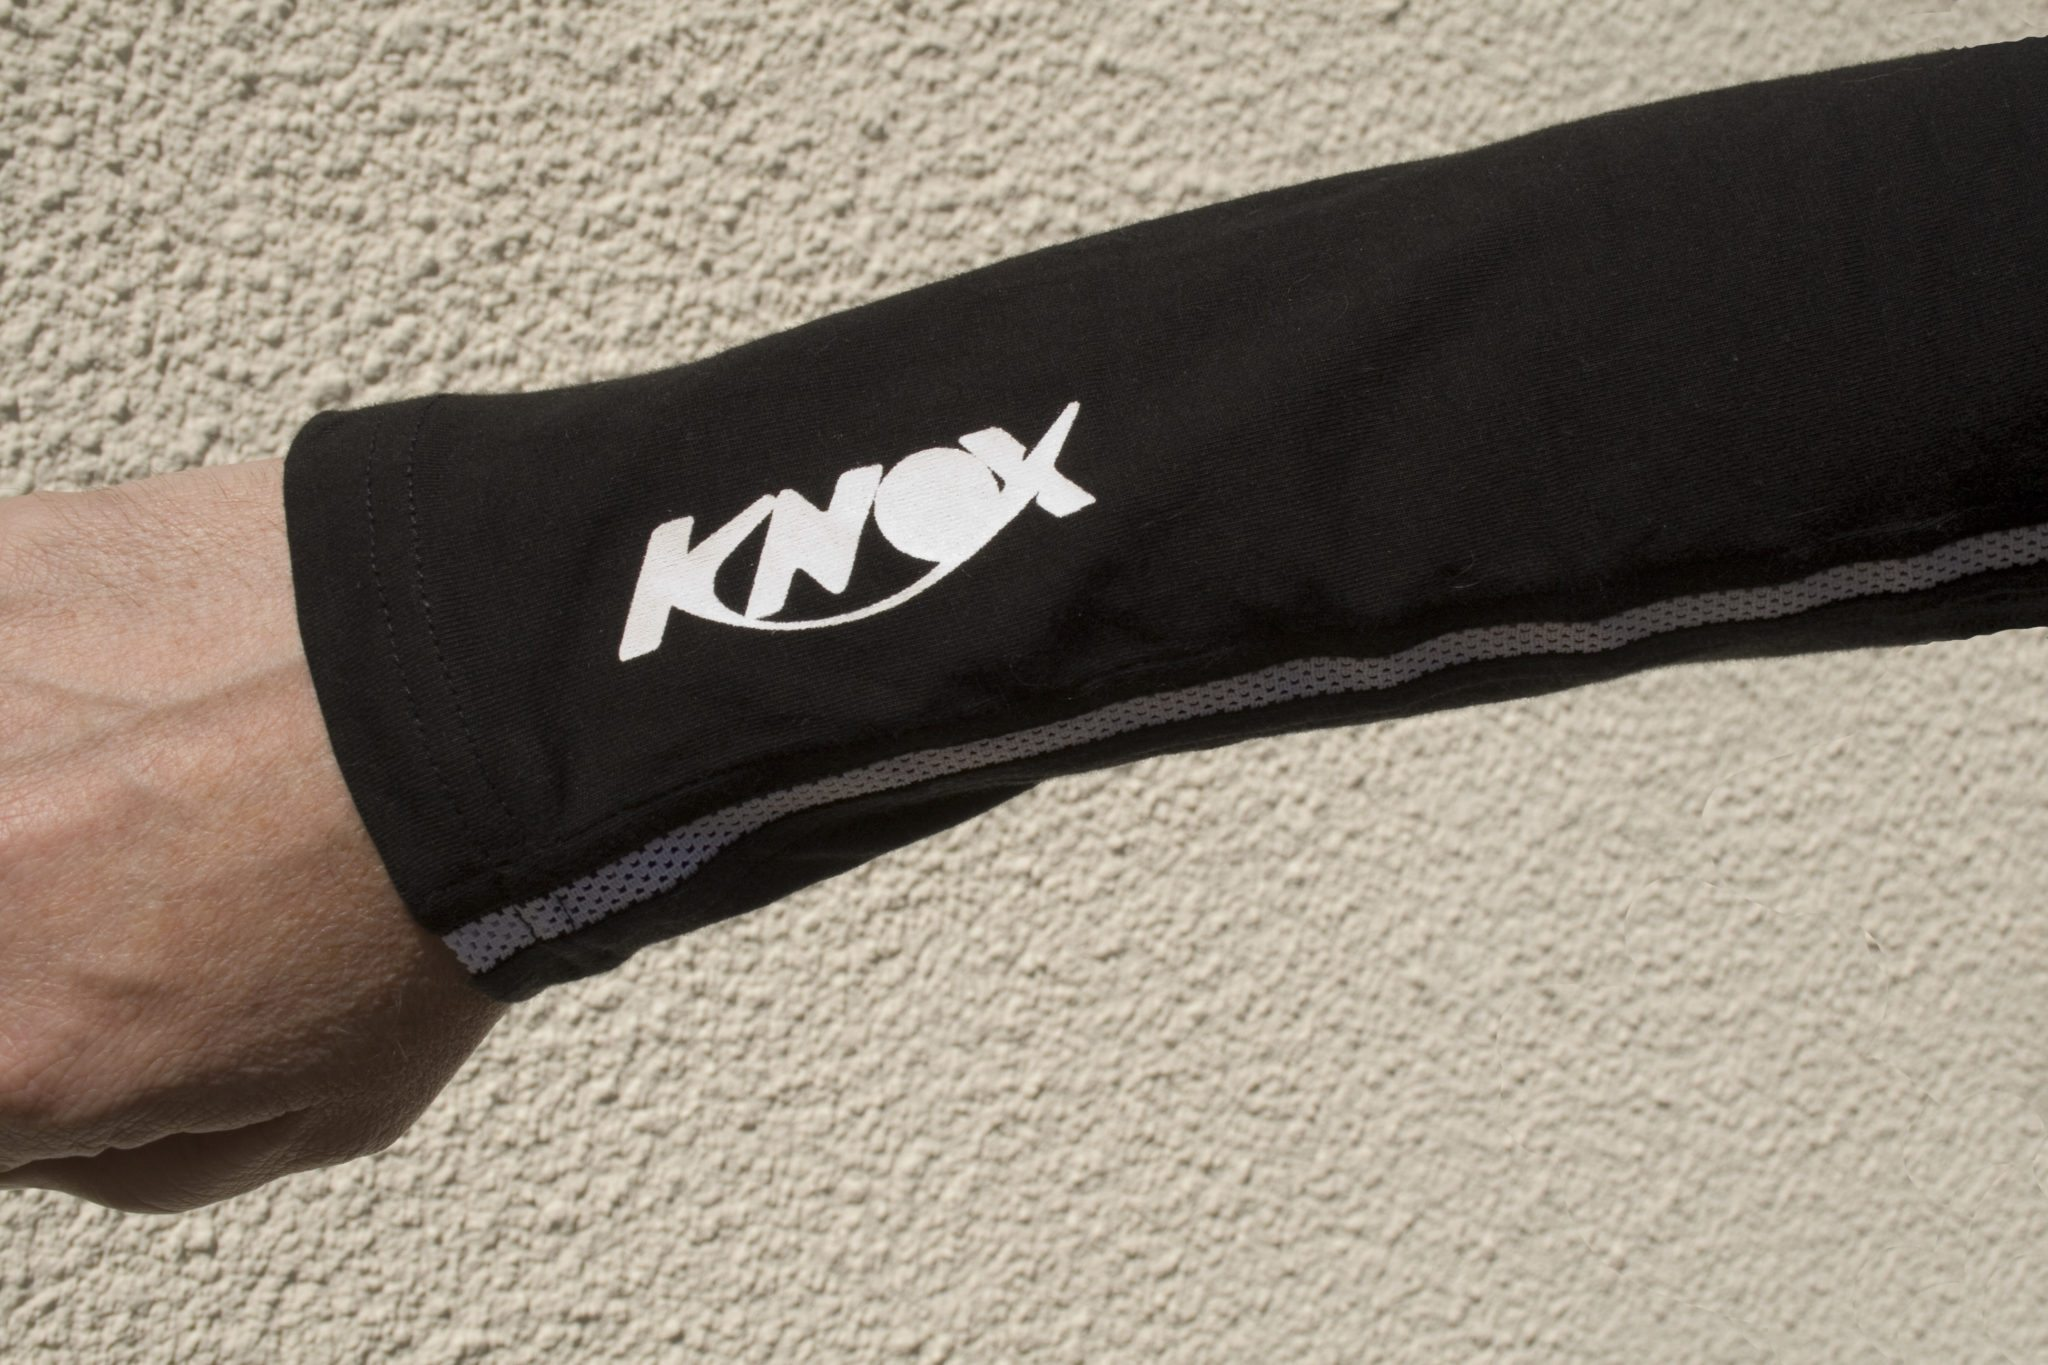 Knox Dry Inside base layer